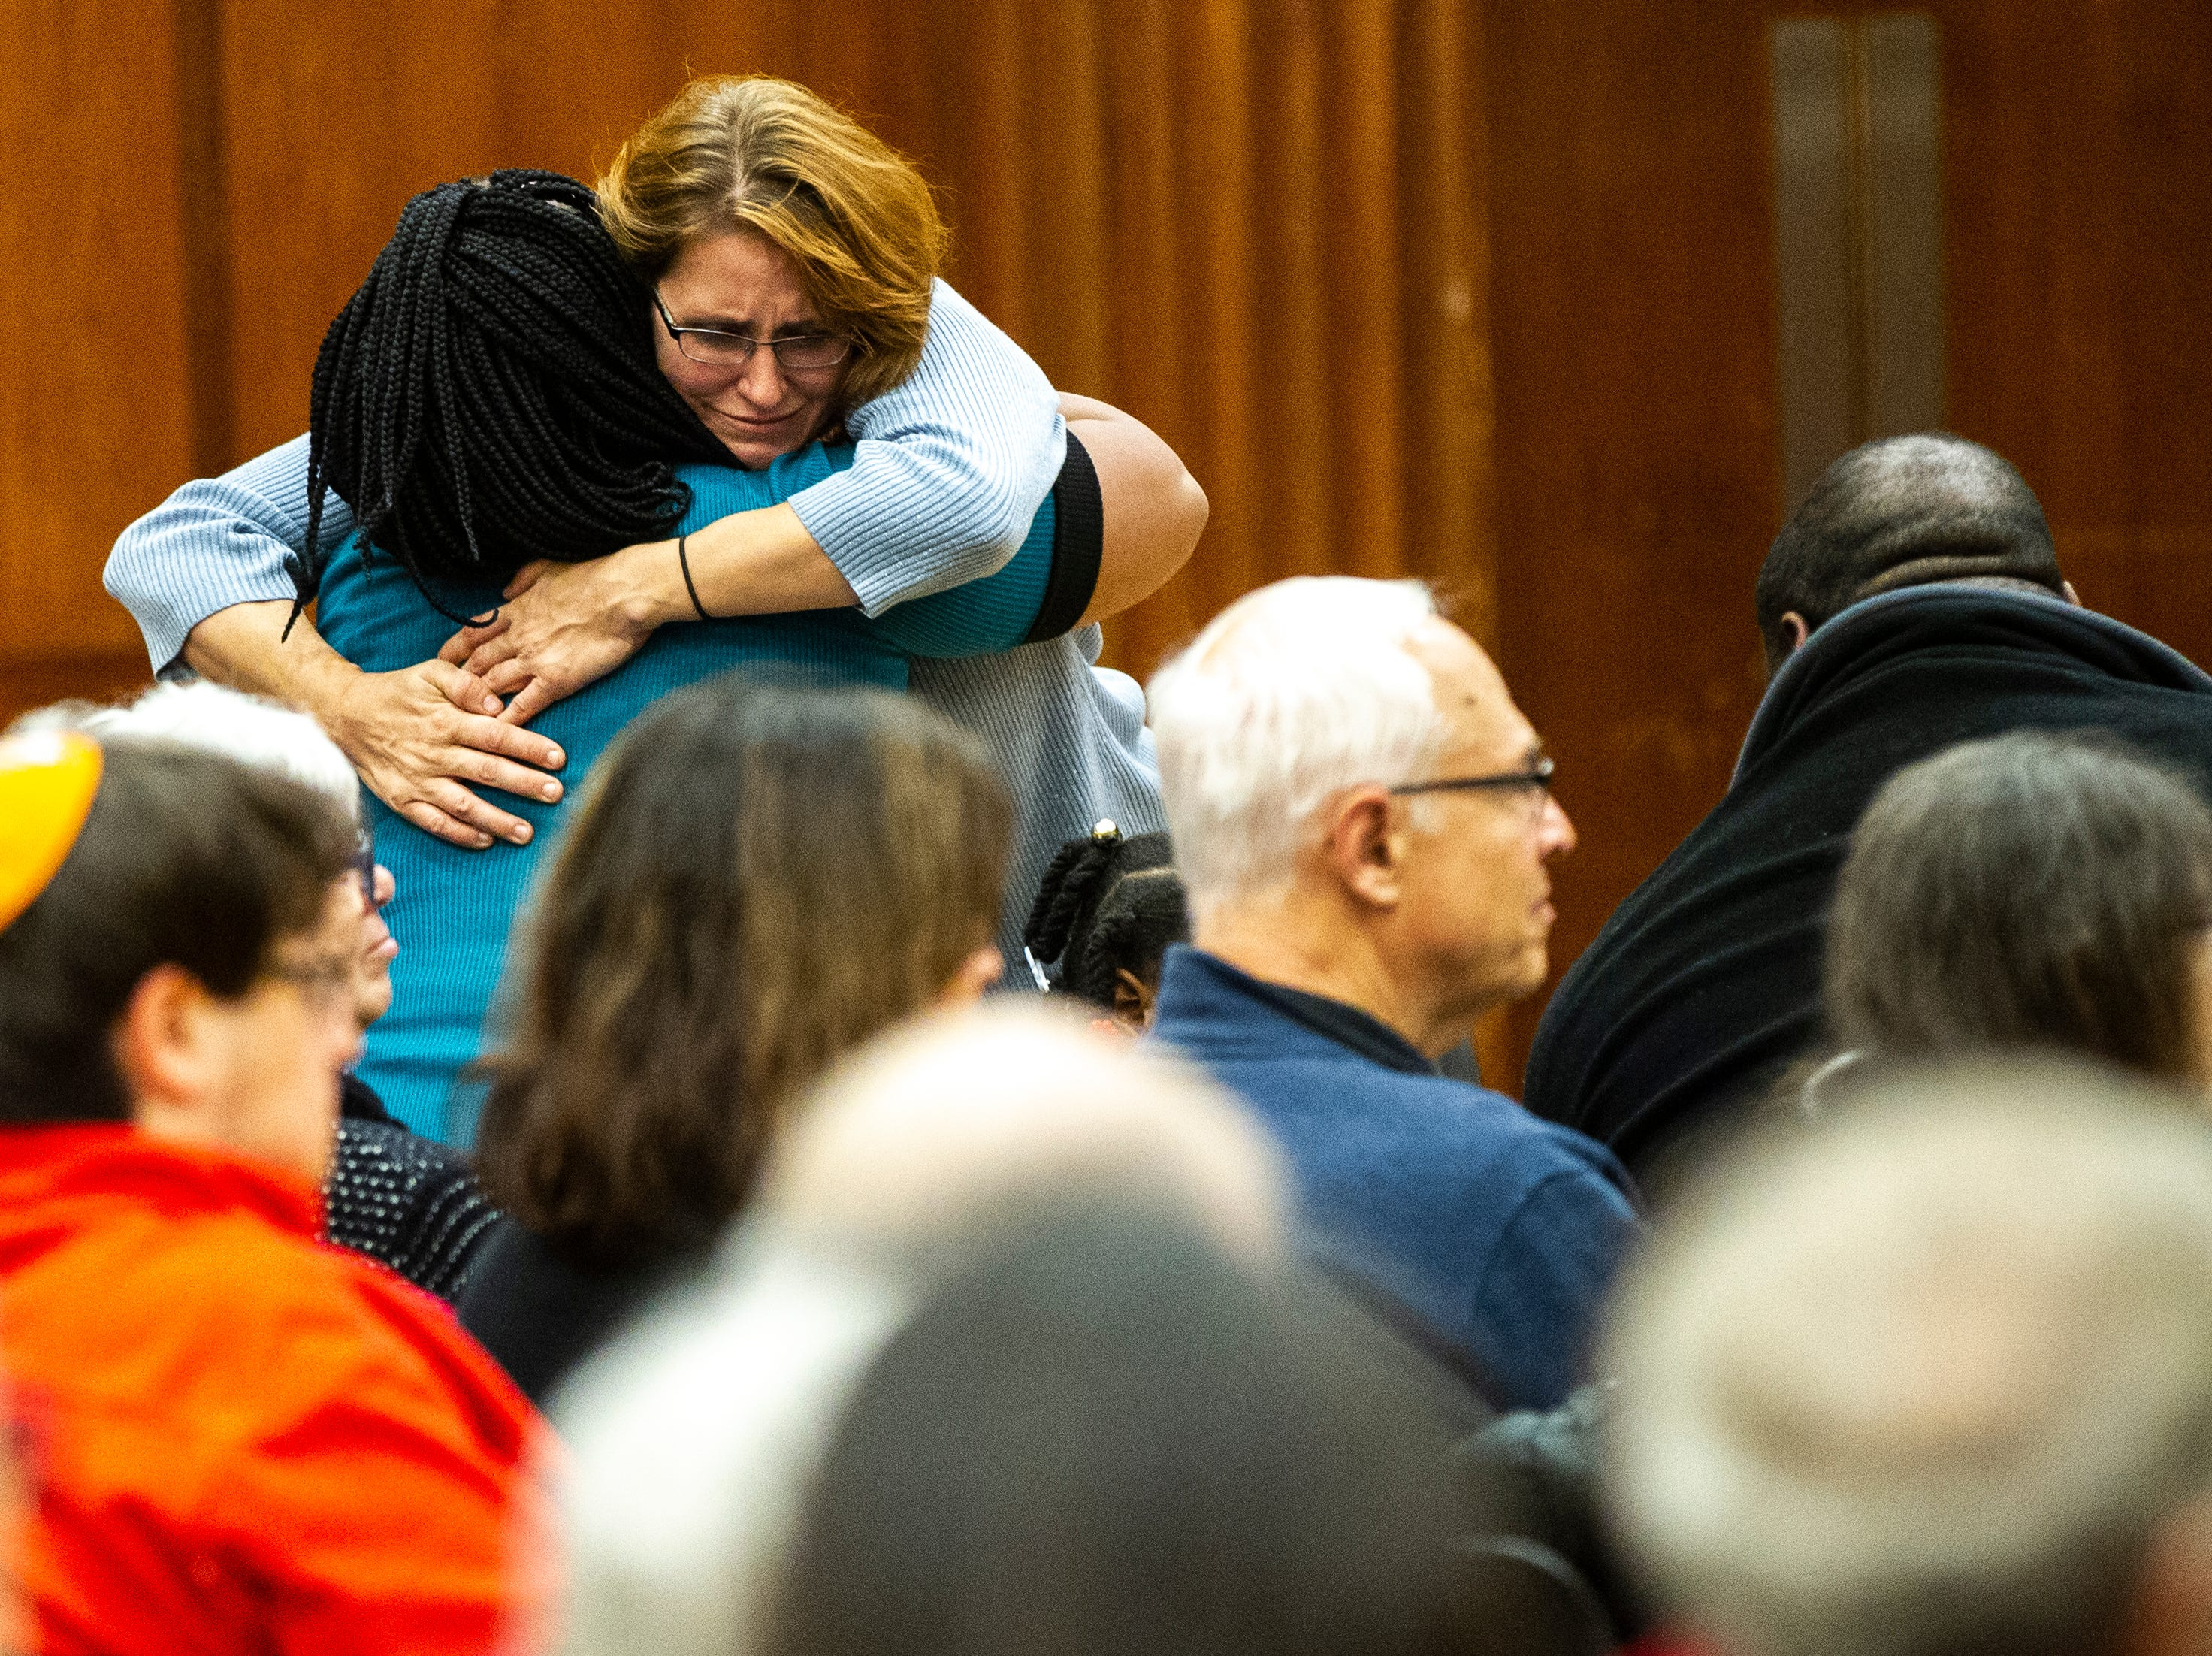 Rachael Hills, of Iowa City embraces Gerri Allen after her speech during a vigil on Tuesday, Oct. 30, 2018, in the Iowa Memorial Union second floor ballroom on Tuesday night, Oct. 30, 2018. The vigil was in response to the Pittsburgh synagogue and Louisville shootings.